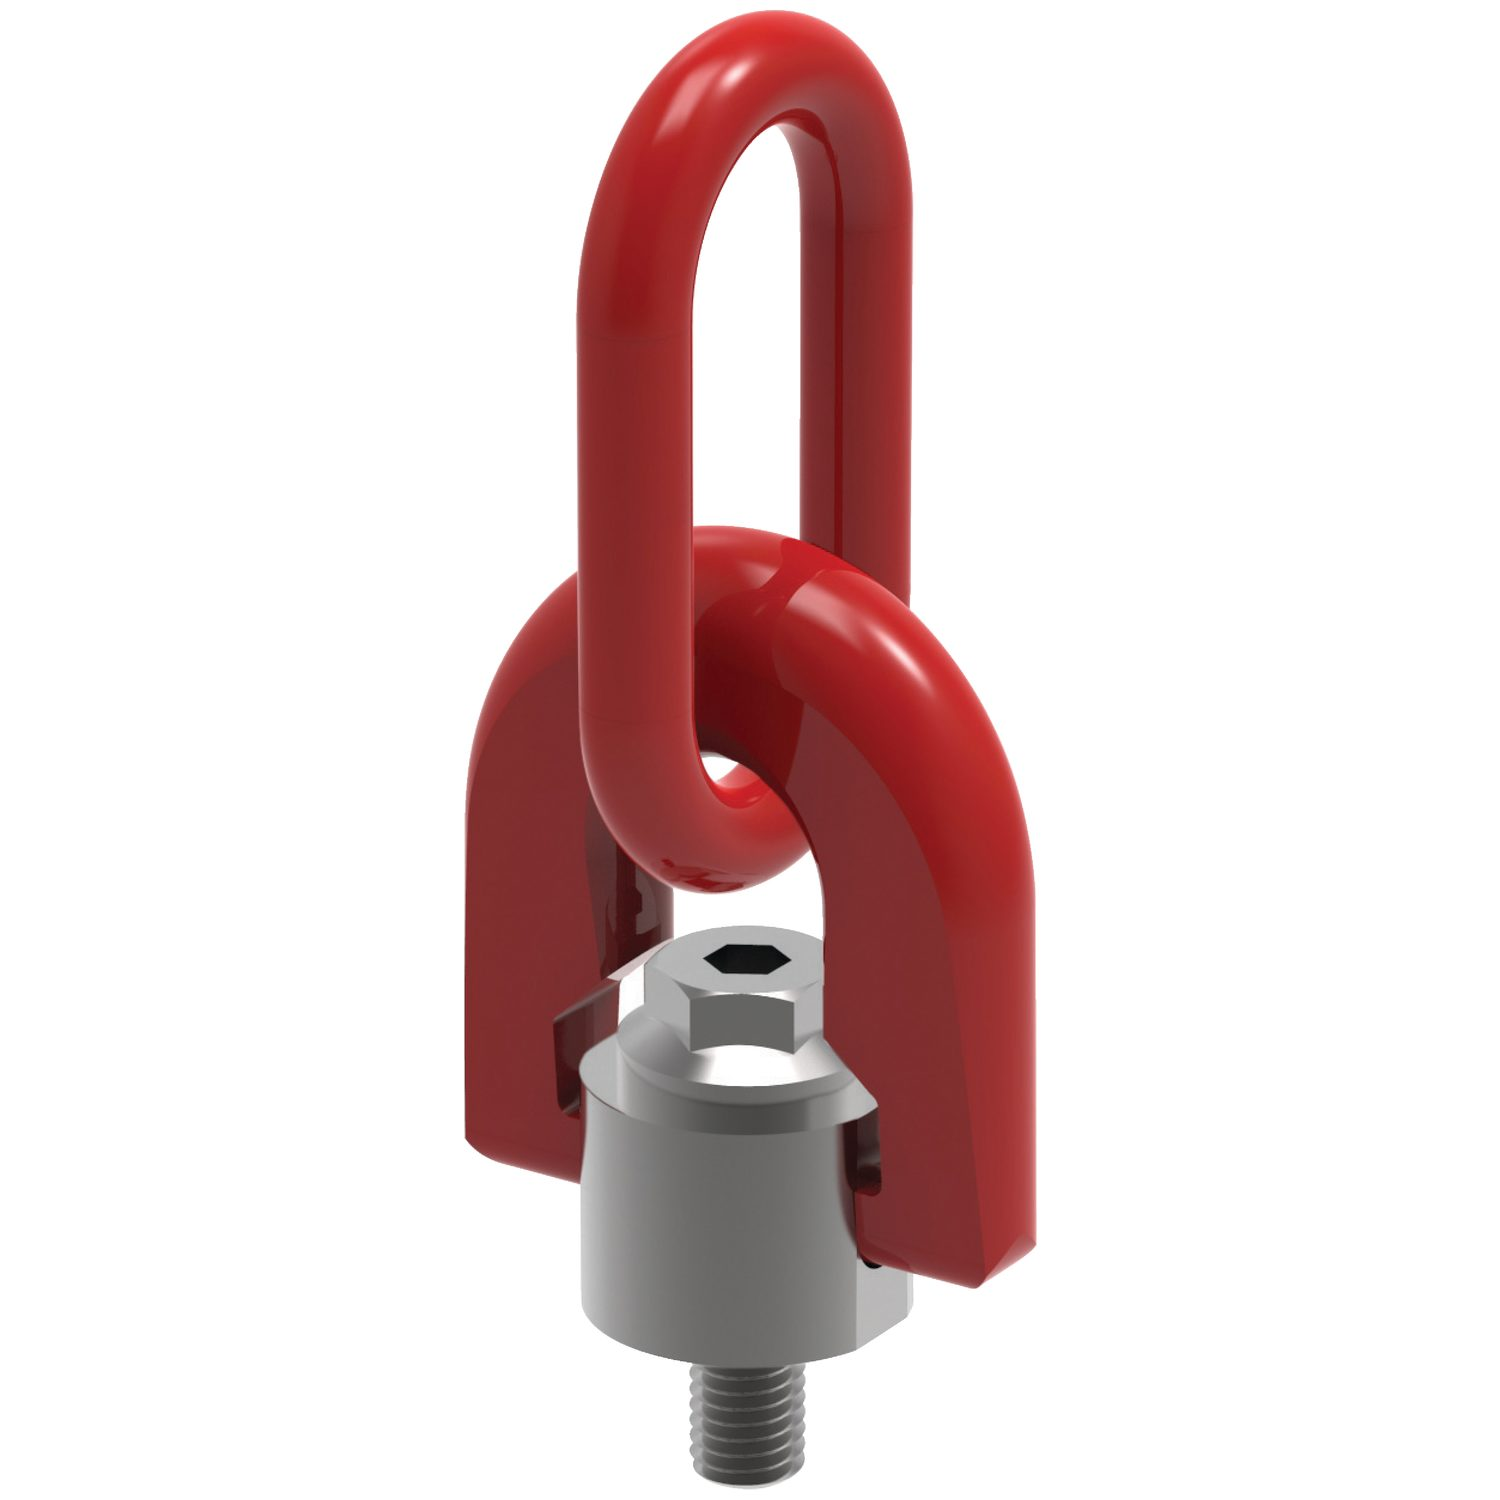 Triple Swivel Rings Male Triple swivel lifting eye bolts. M8 to M56 and for loads up to 22 tons per ring.